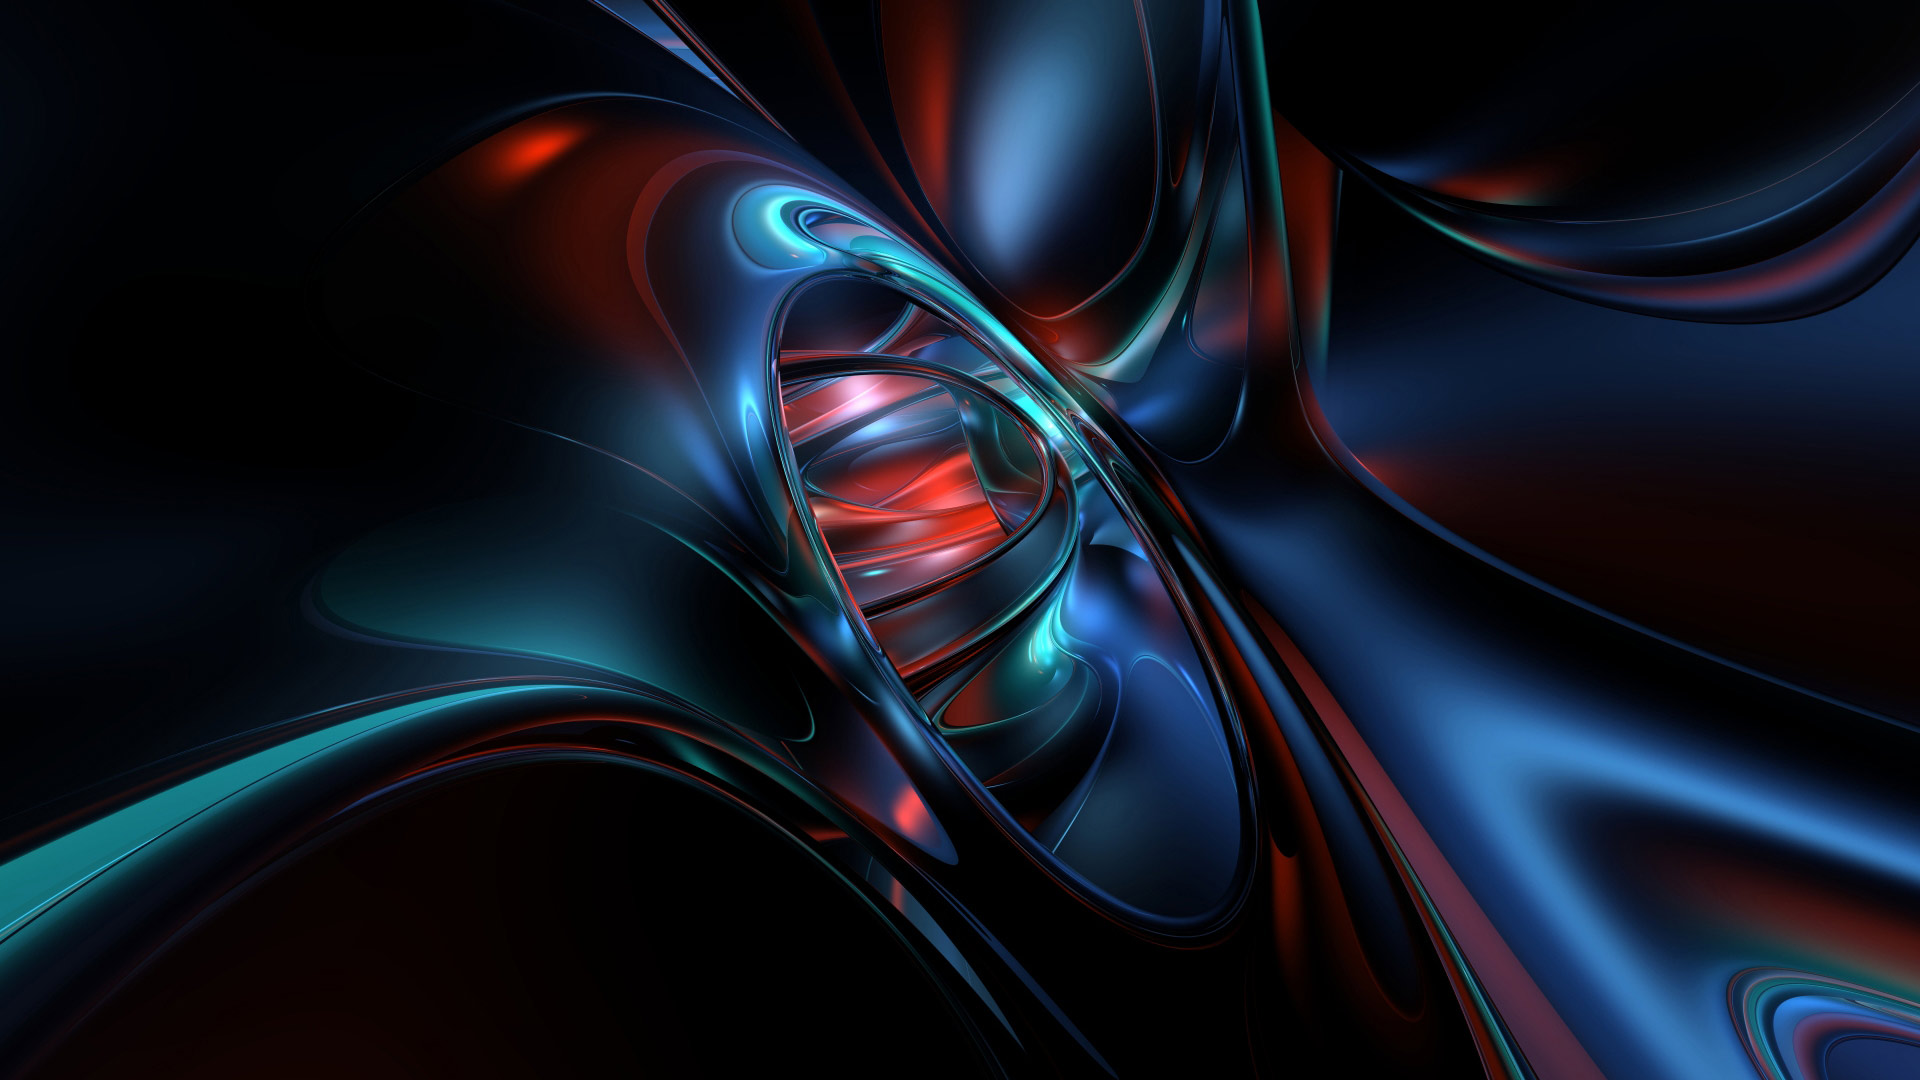 12 Graphic 3D HD Abstract Desktop Backgrounds Images